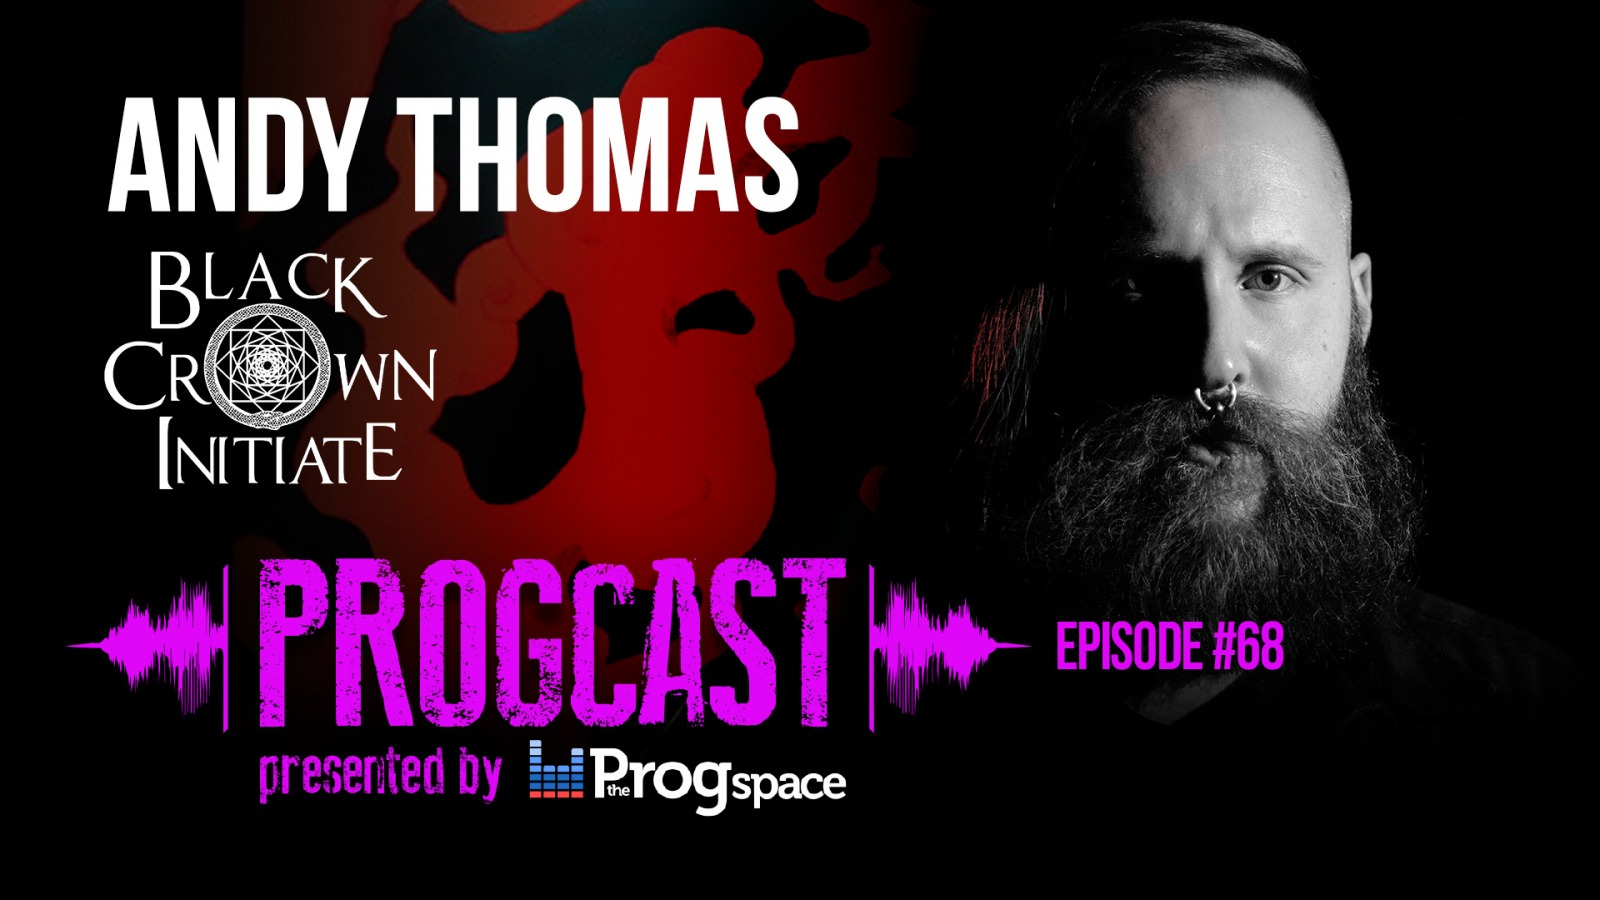 Progcast 068: Andy Thomas (Black Crown Initiate)